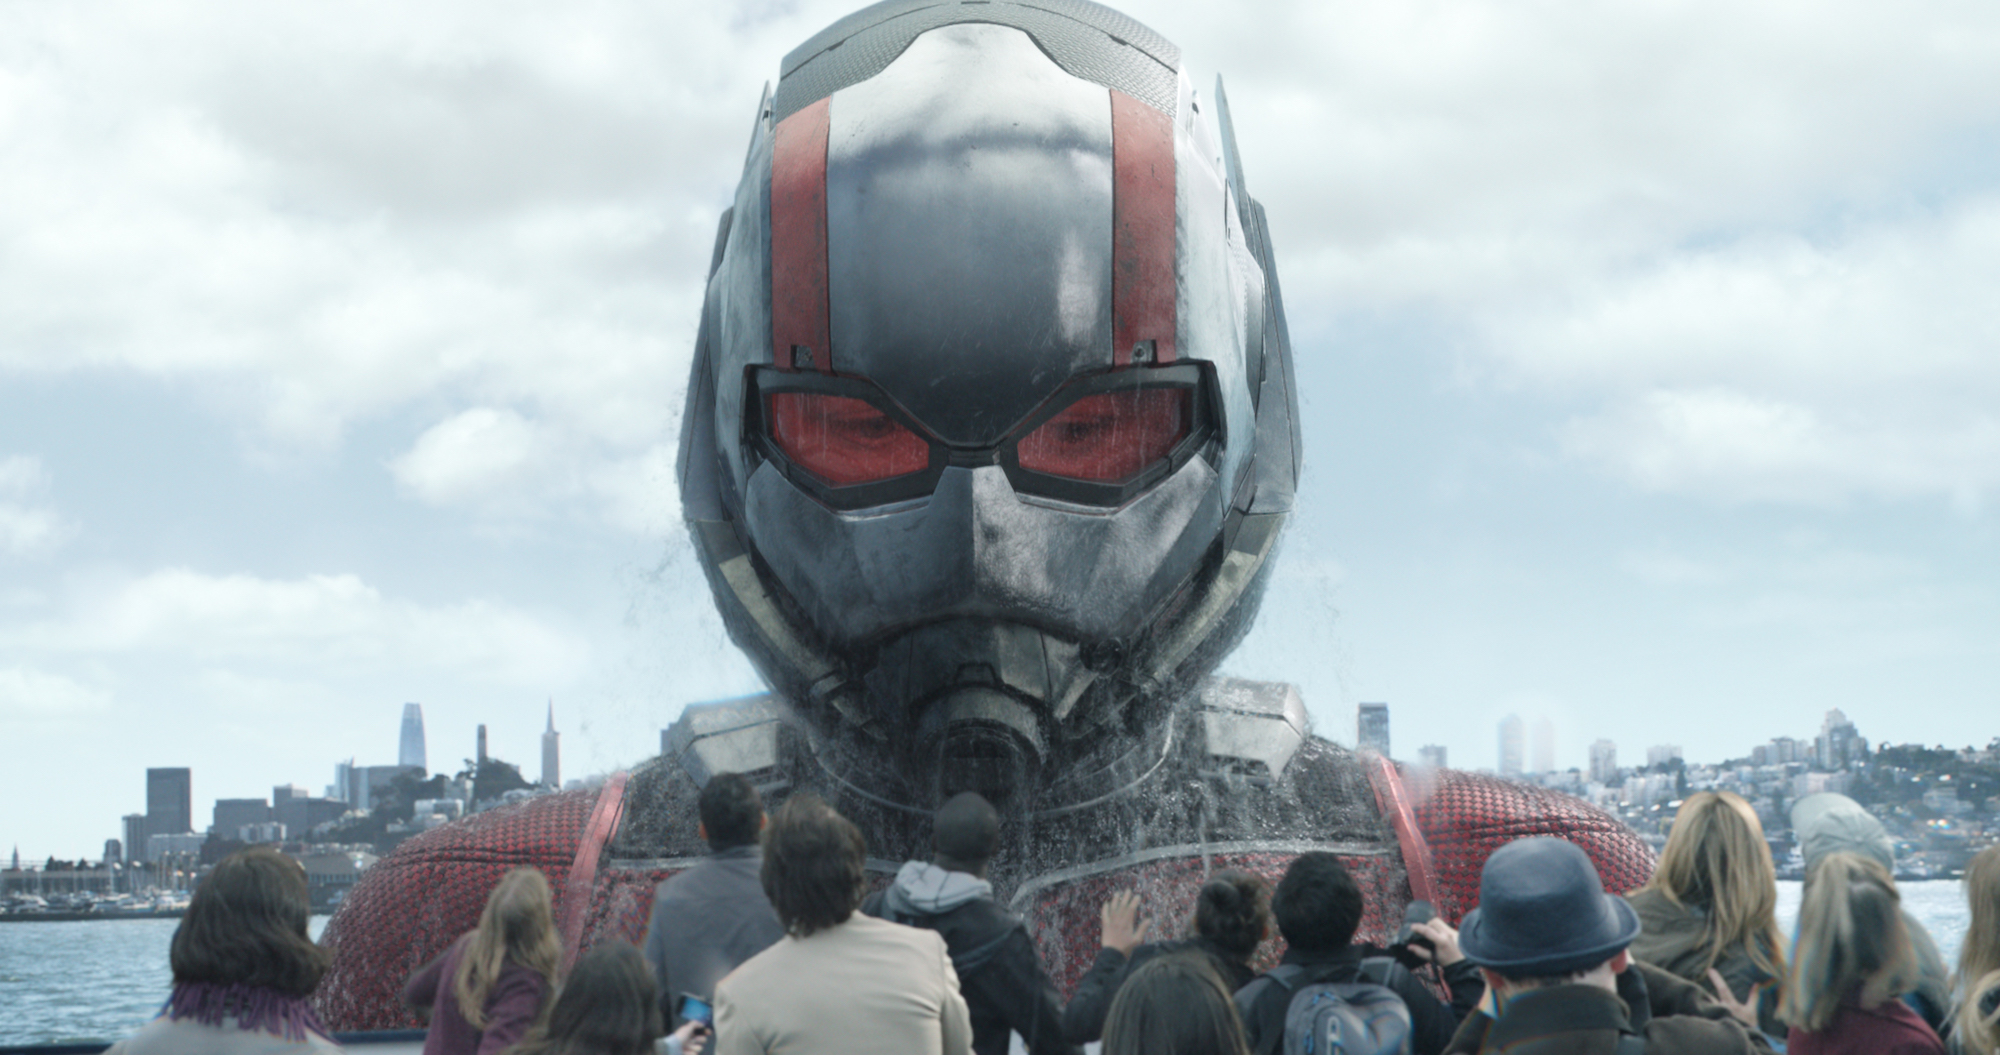 movie still from Ant Man and The Wasp